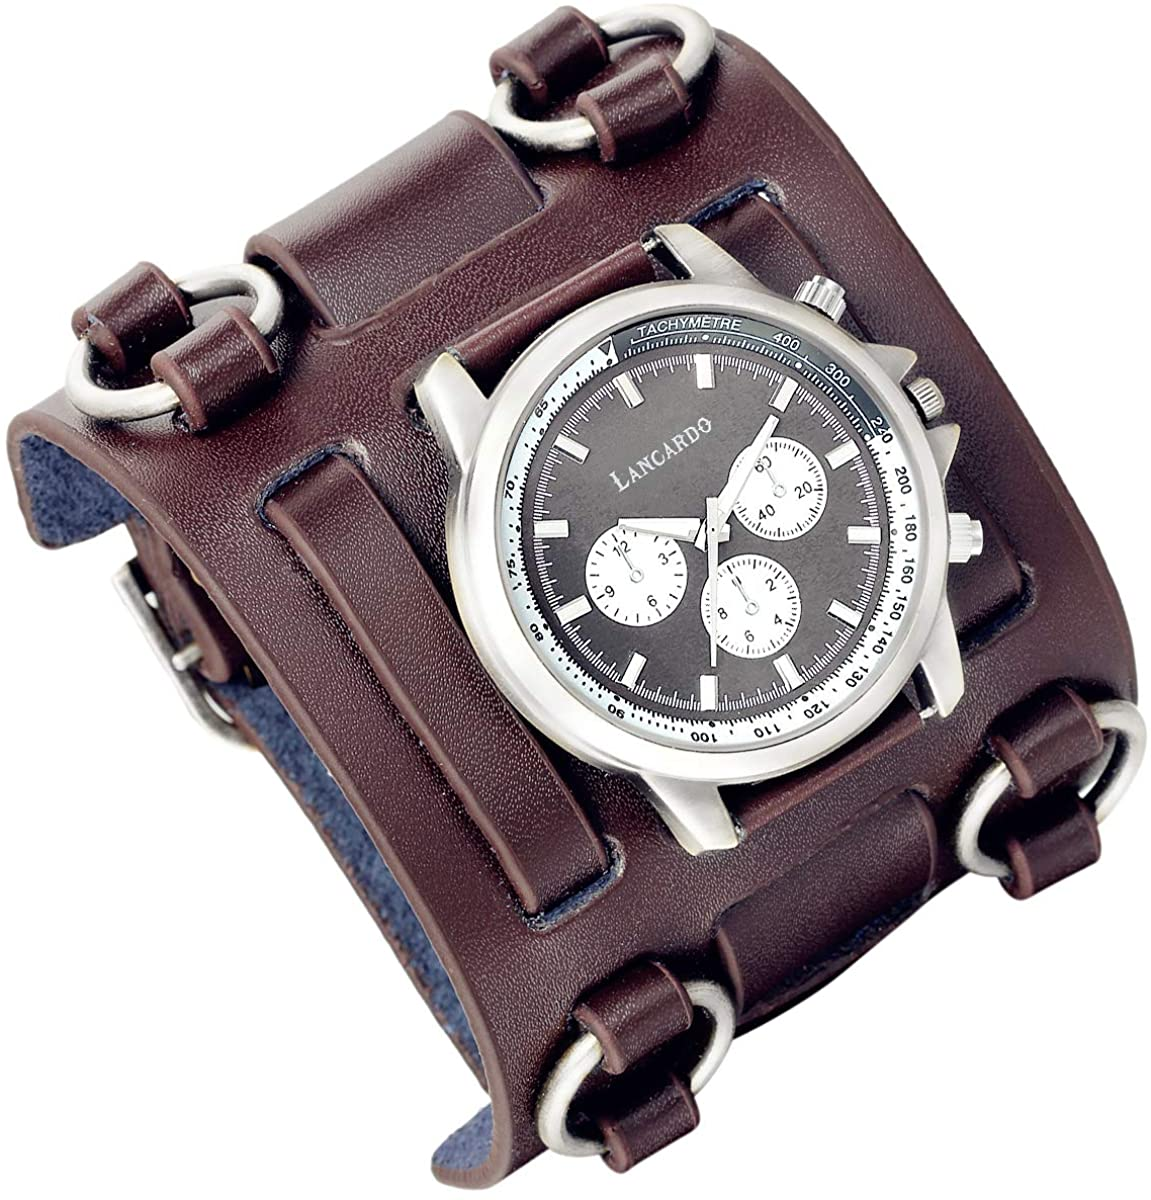 Mens Retro Steampunk Rock Gothic Wide Genuine Leather Bracelet Cuff Watches Replaceable Big Face Upgraded Japanese Quartz Movement 30M Waterproof Watch Costume Watch for Halloween